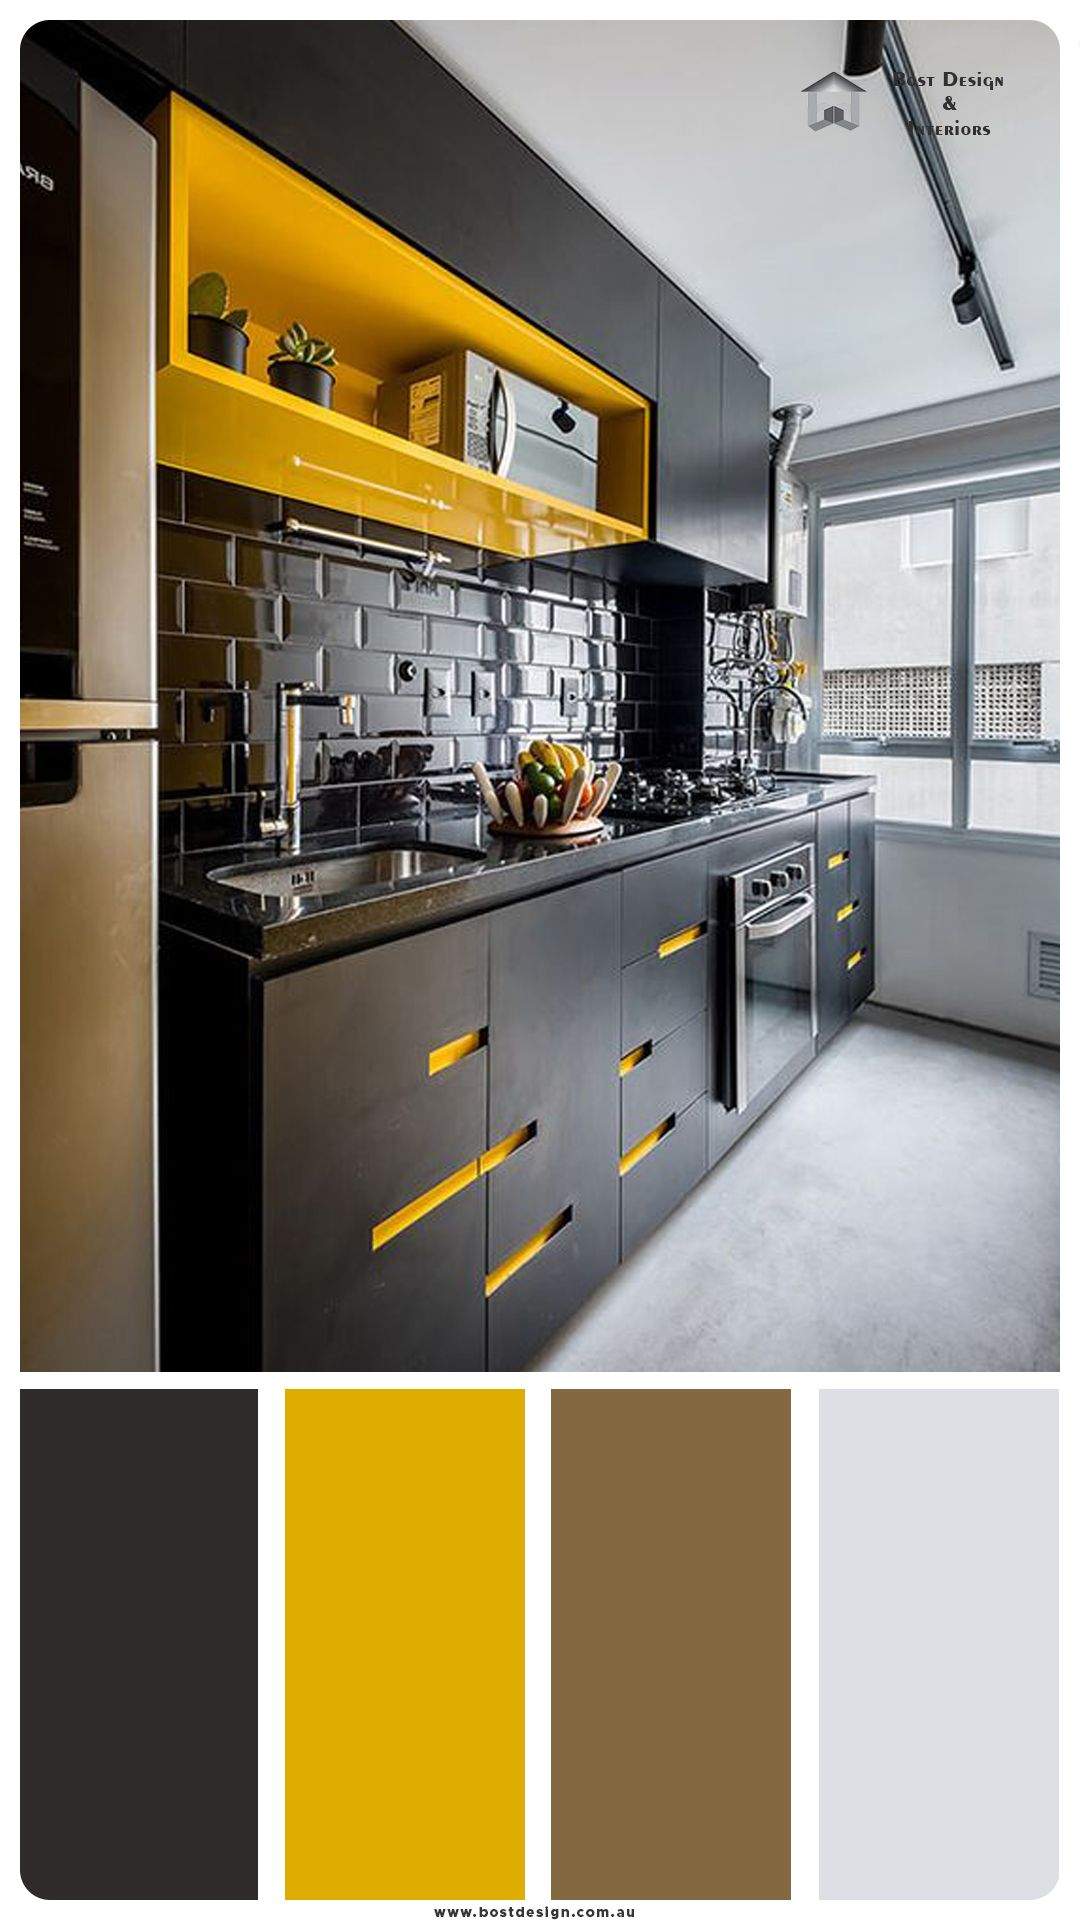 Black And Yellow Color Pallet For Kitchen In 2021 Design Decor Designs